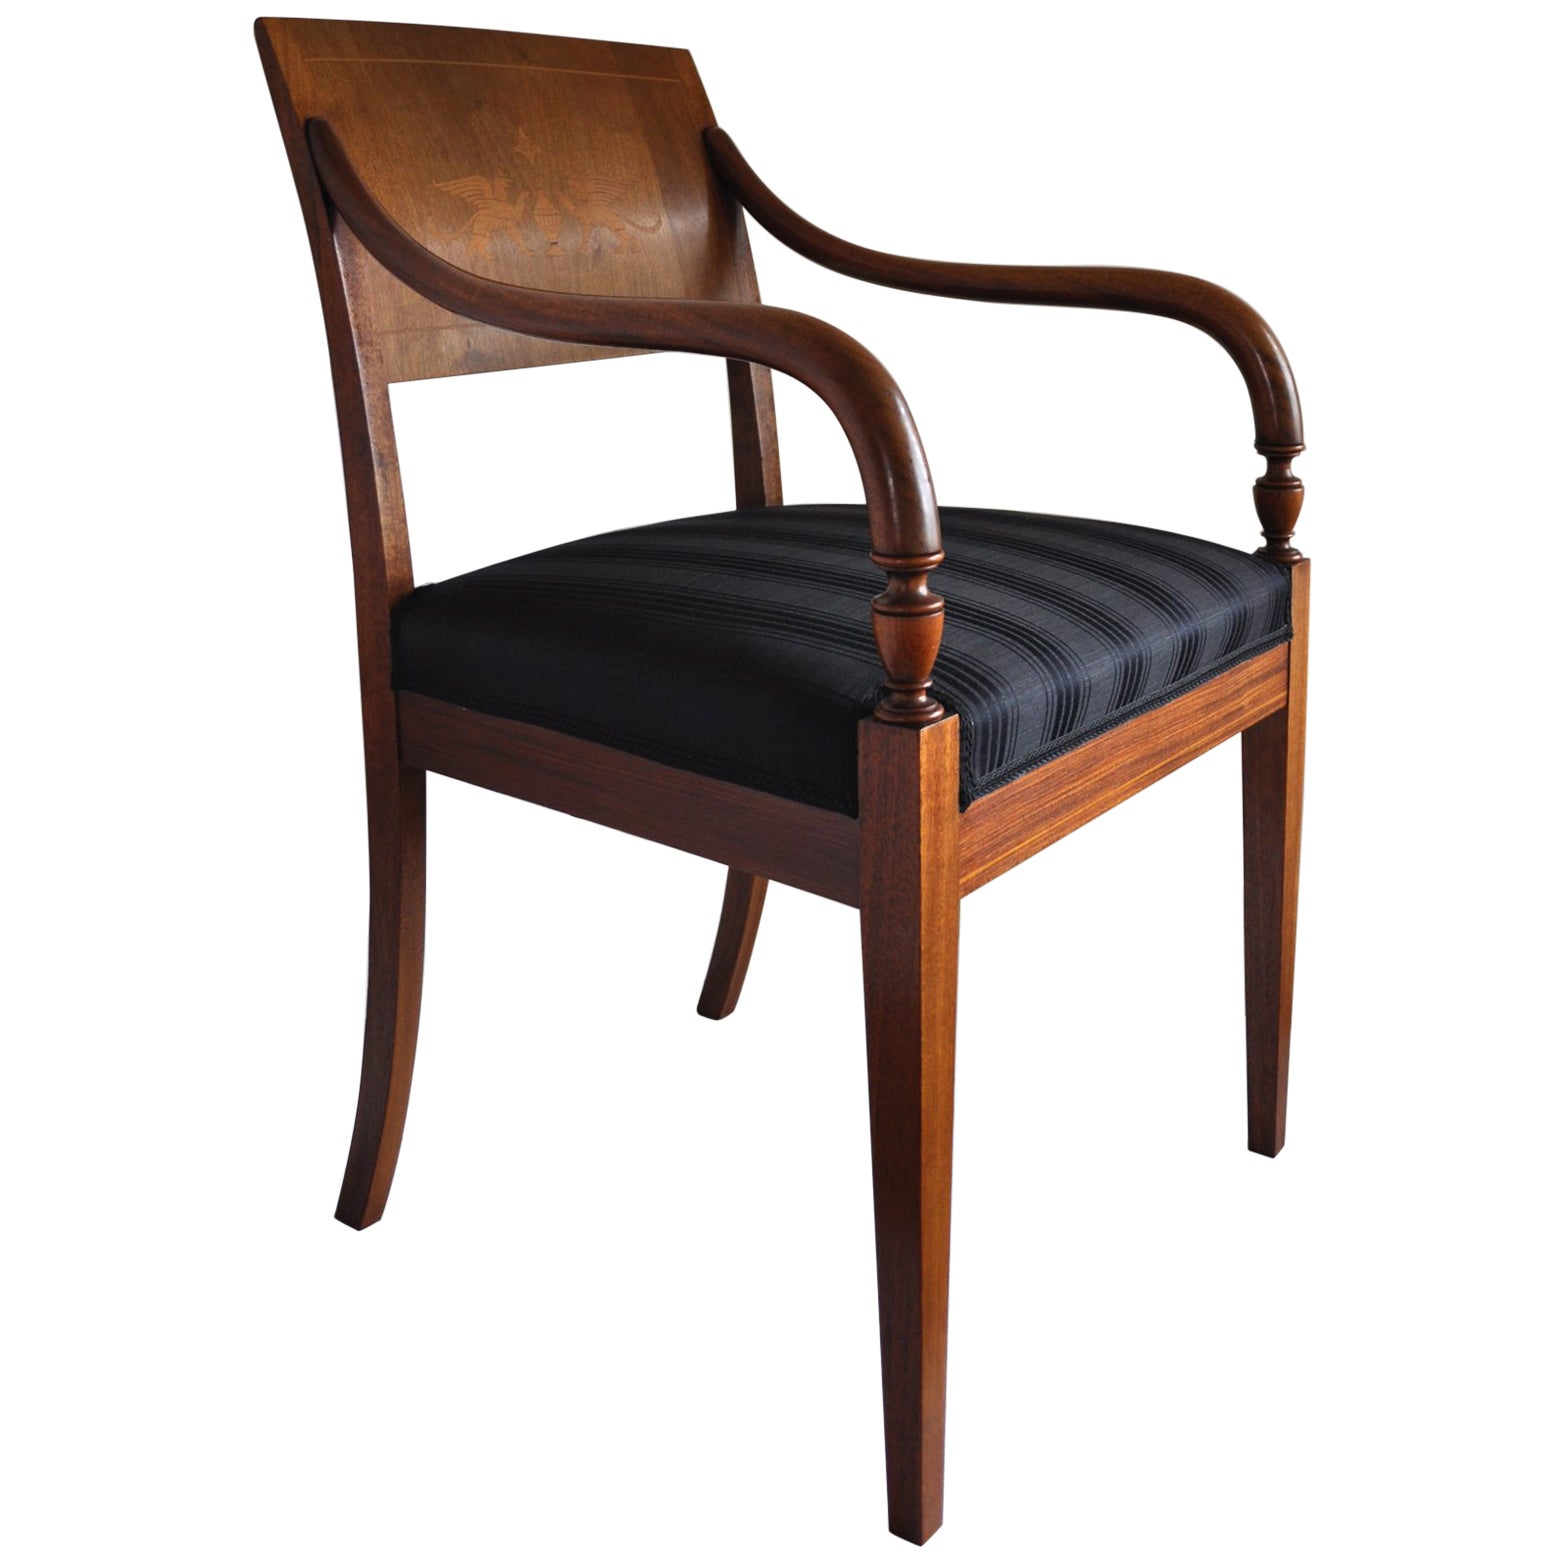 Danish Empire Armchair in Mahogany with Birch Inlays